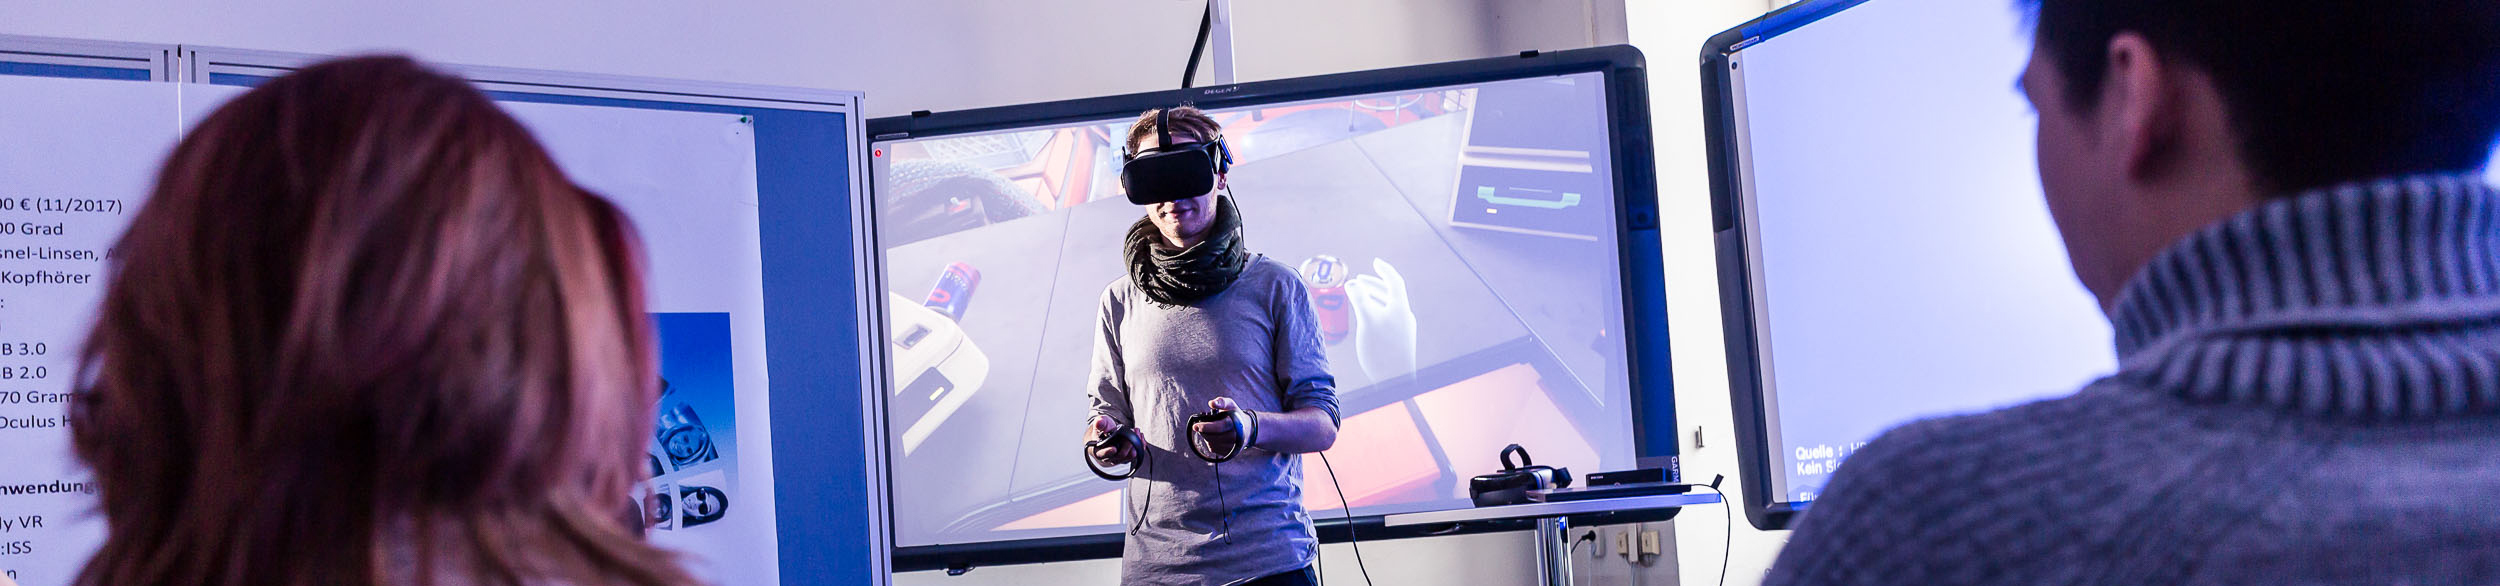 Student in einer Virtual Reality Simulation